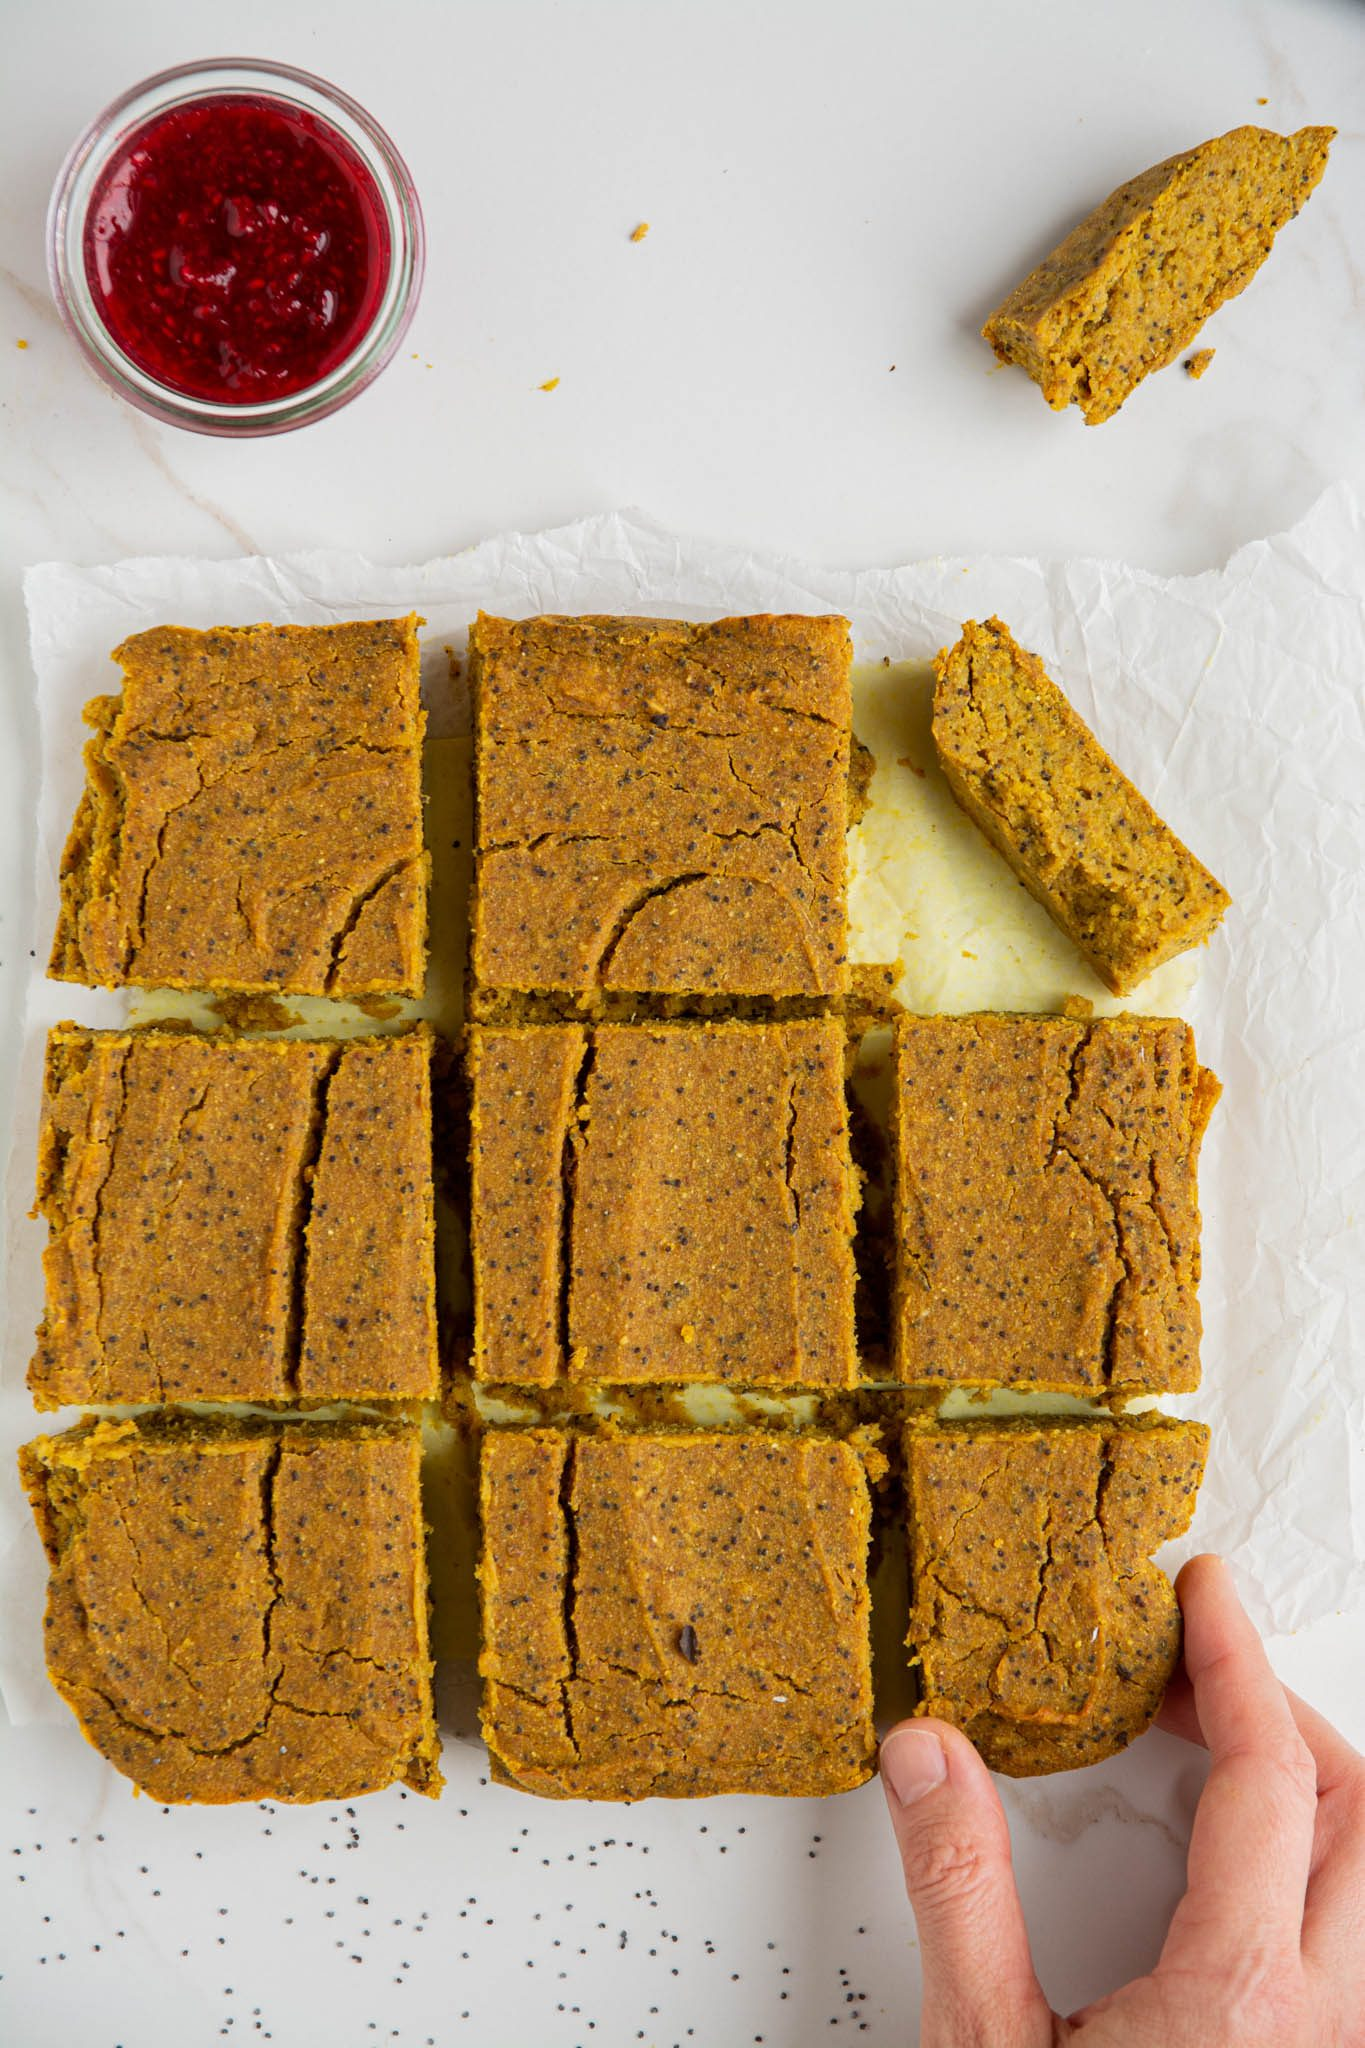 Learn how to make a healthy gluten-free vegan pumpkin pie recipe without crust. This pie is light and lean, therefore suitable for weekday indulgence. However, it can also be the main dessert on your vegan Thanksgiving table.